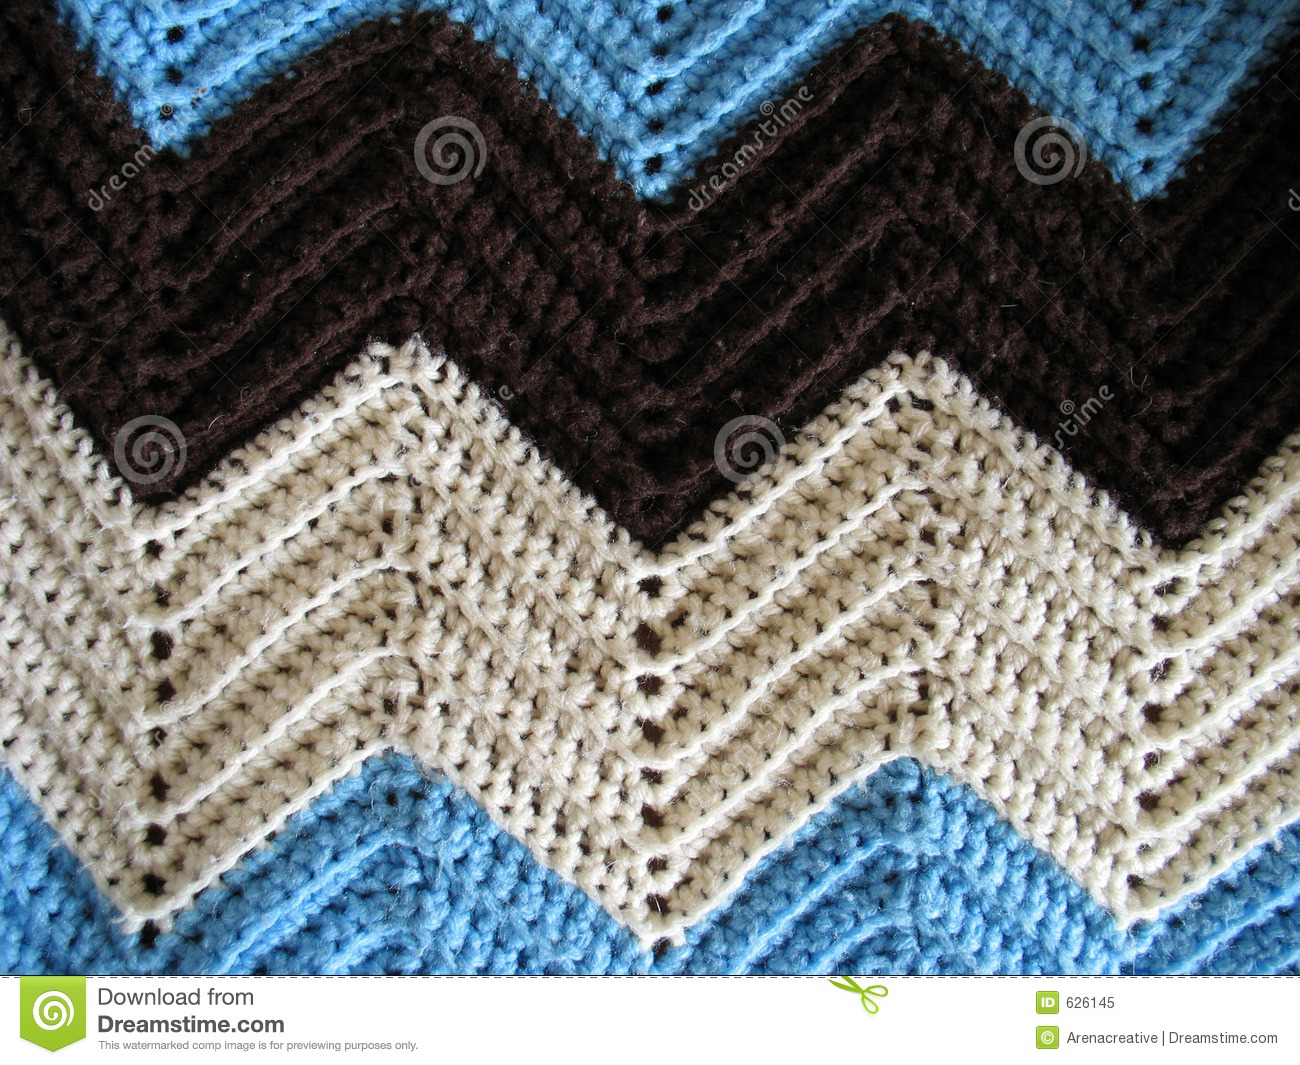 Knitted Afghan Pattern Royalty Free Stock Photo - Image: 626145